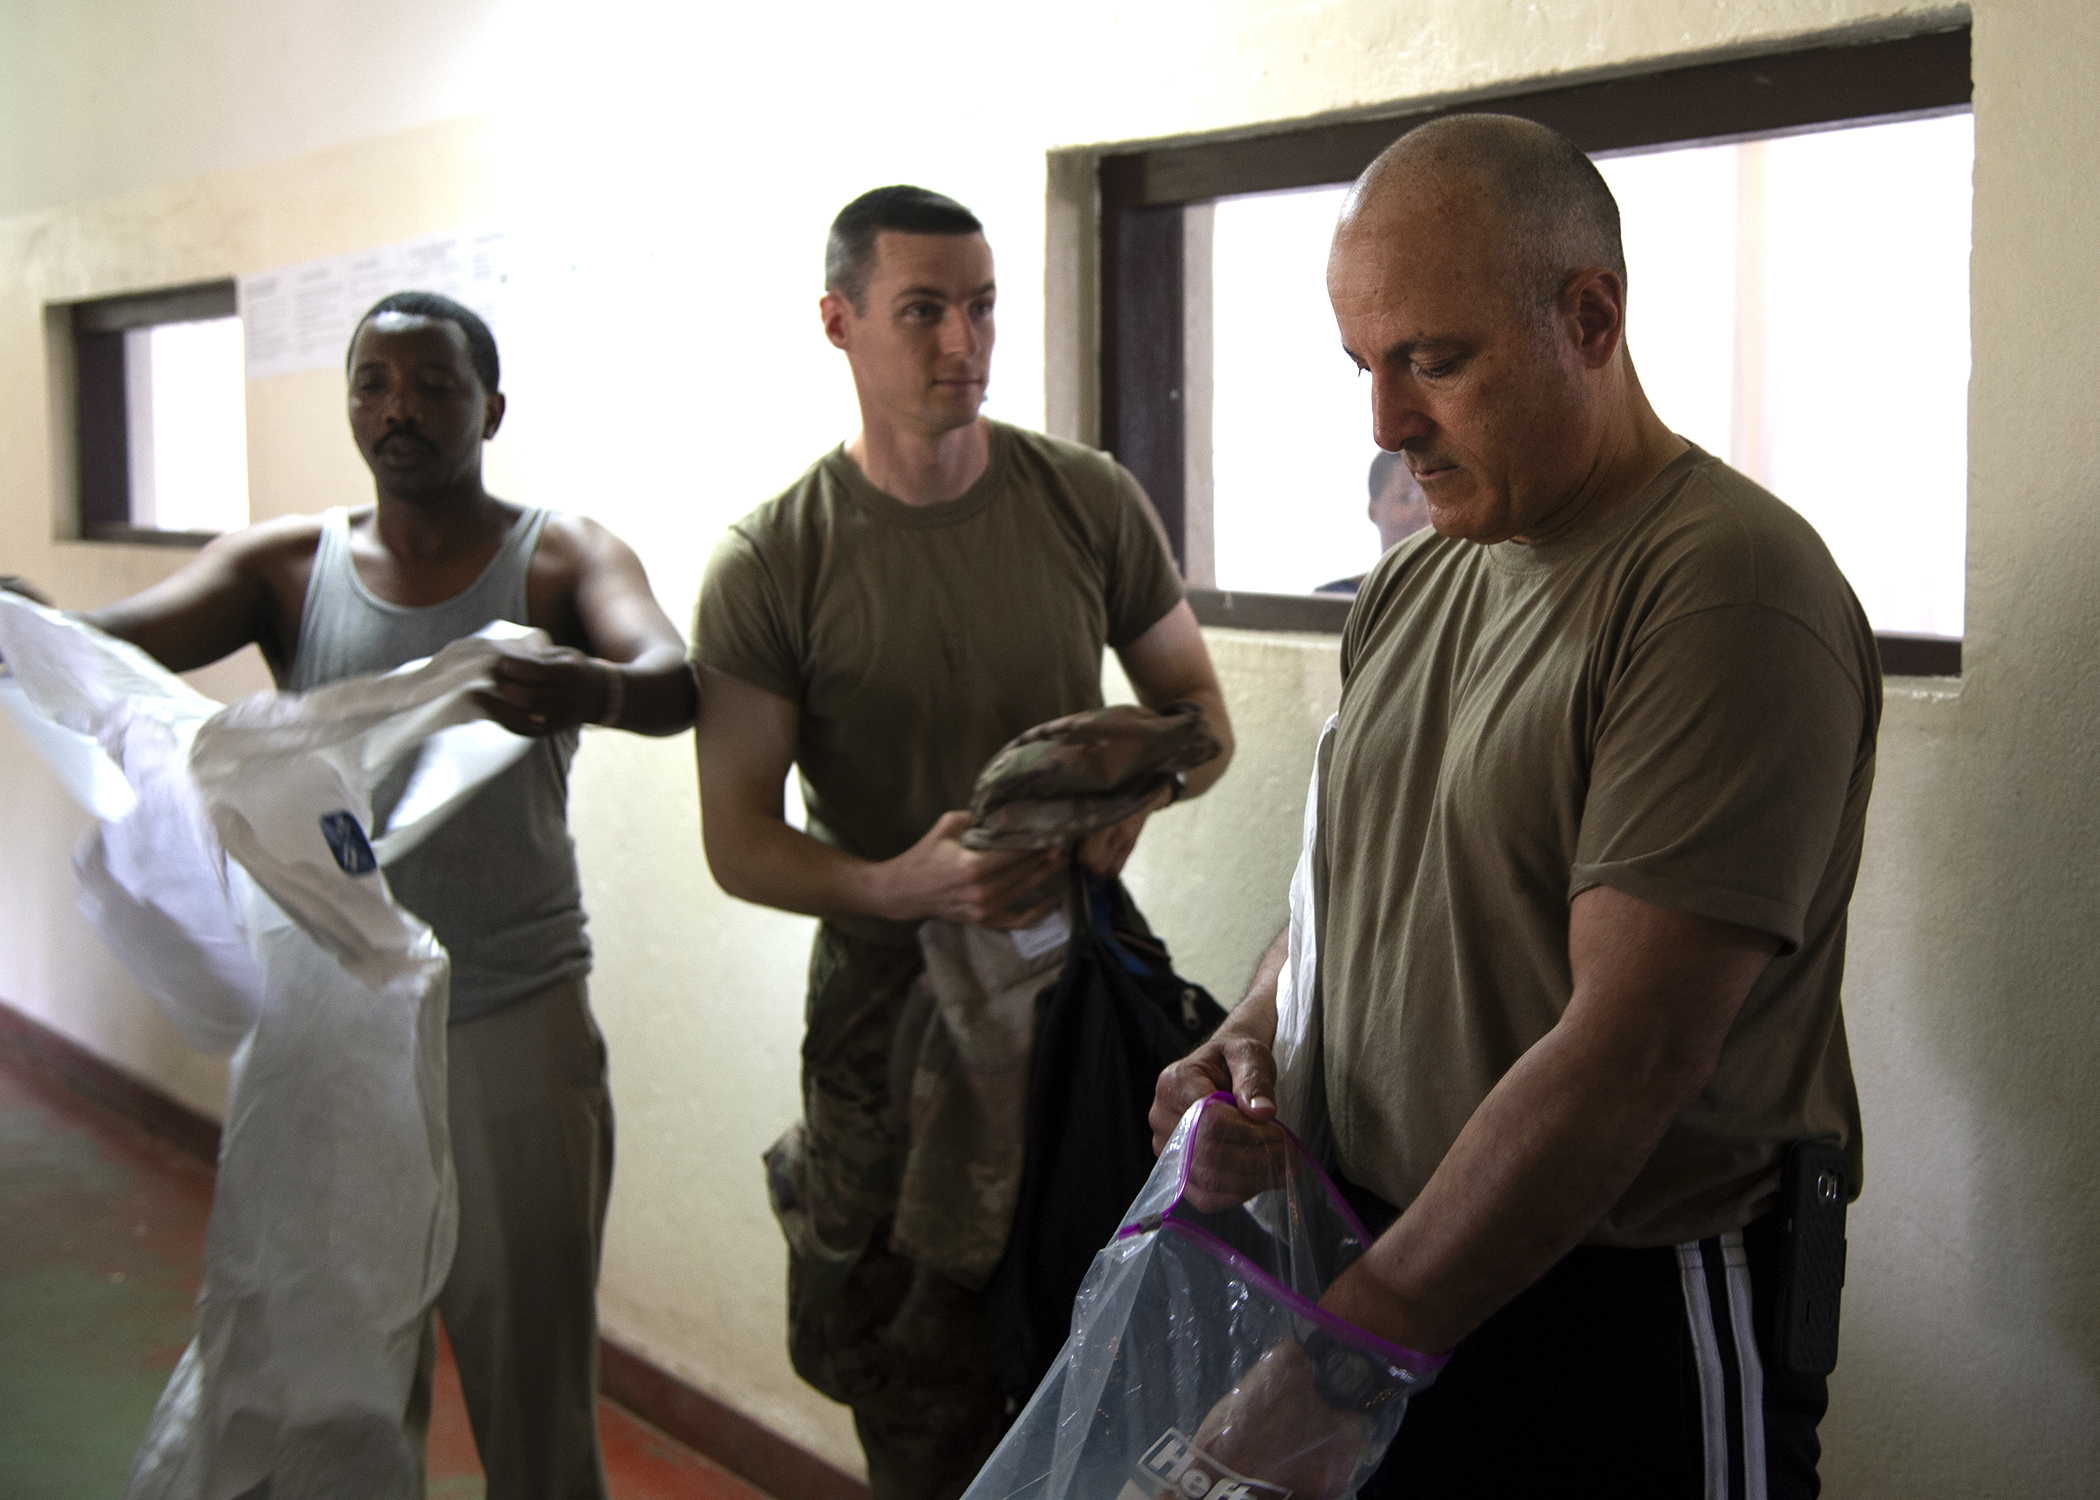 U.S. Air Force Col. James Bermudez, right, force surgeon assigned to Combined Joint Task Force-Horn of Africa (CJTF-HOA); U.S. Army Capt. William Brant, center, team chief for the 403rd Civil Affairs Battalion, assigned to CJTF-HOA; and Burundi National Defence Force Maj. Jerome Irankunda, left, microbiologist and chief of laboratory services at the Kamenge Military Hospital, practice the donning of hazardous material suits at the Kamenge Military Hospital, Bujumbura, Burundi, June 20, 2019. The 403rd Civil Affairs Battalion, CJTF-HOA, and military personnel and doctors from the Kamenge Military Hospital conducted an Ebola preparedness subject matter expert exchange as a precautionary measure for personnel near the border of the Democratic Republic of Congo. (U.S. Navy photo by Mass Communication Specialist 1st Class Nick Scott)